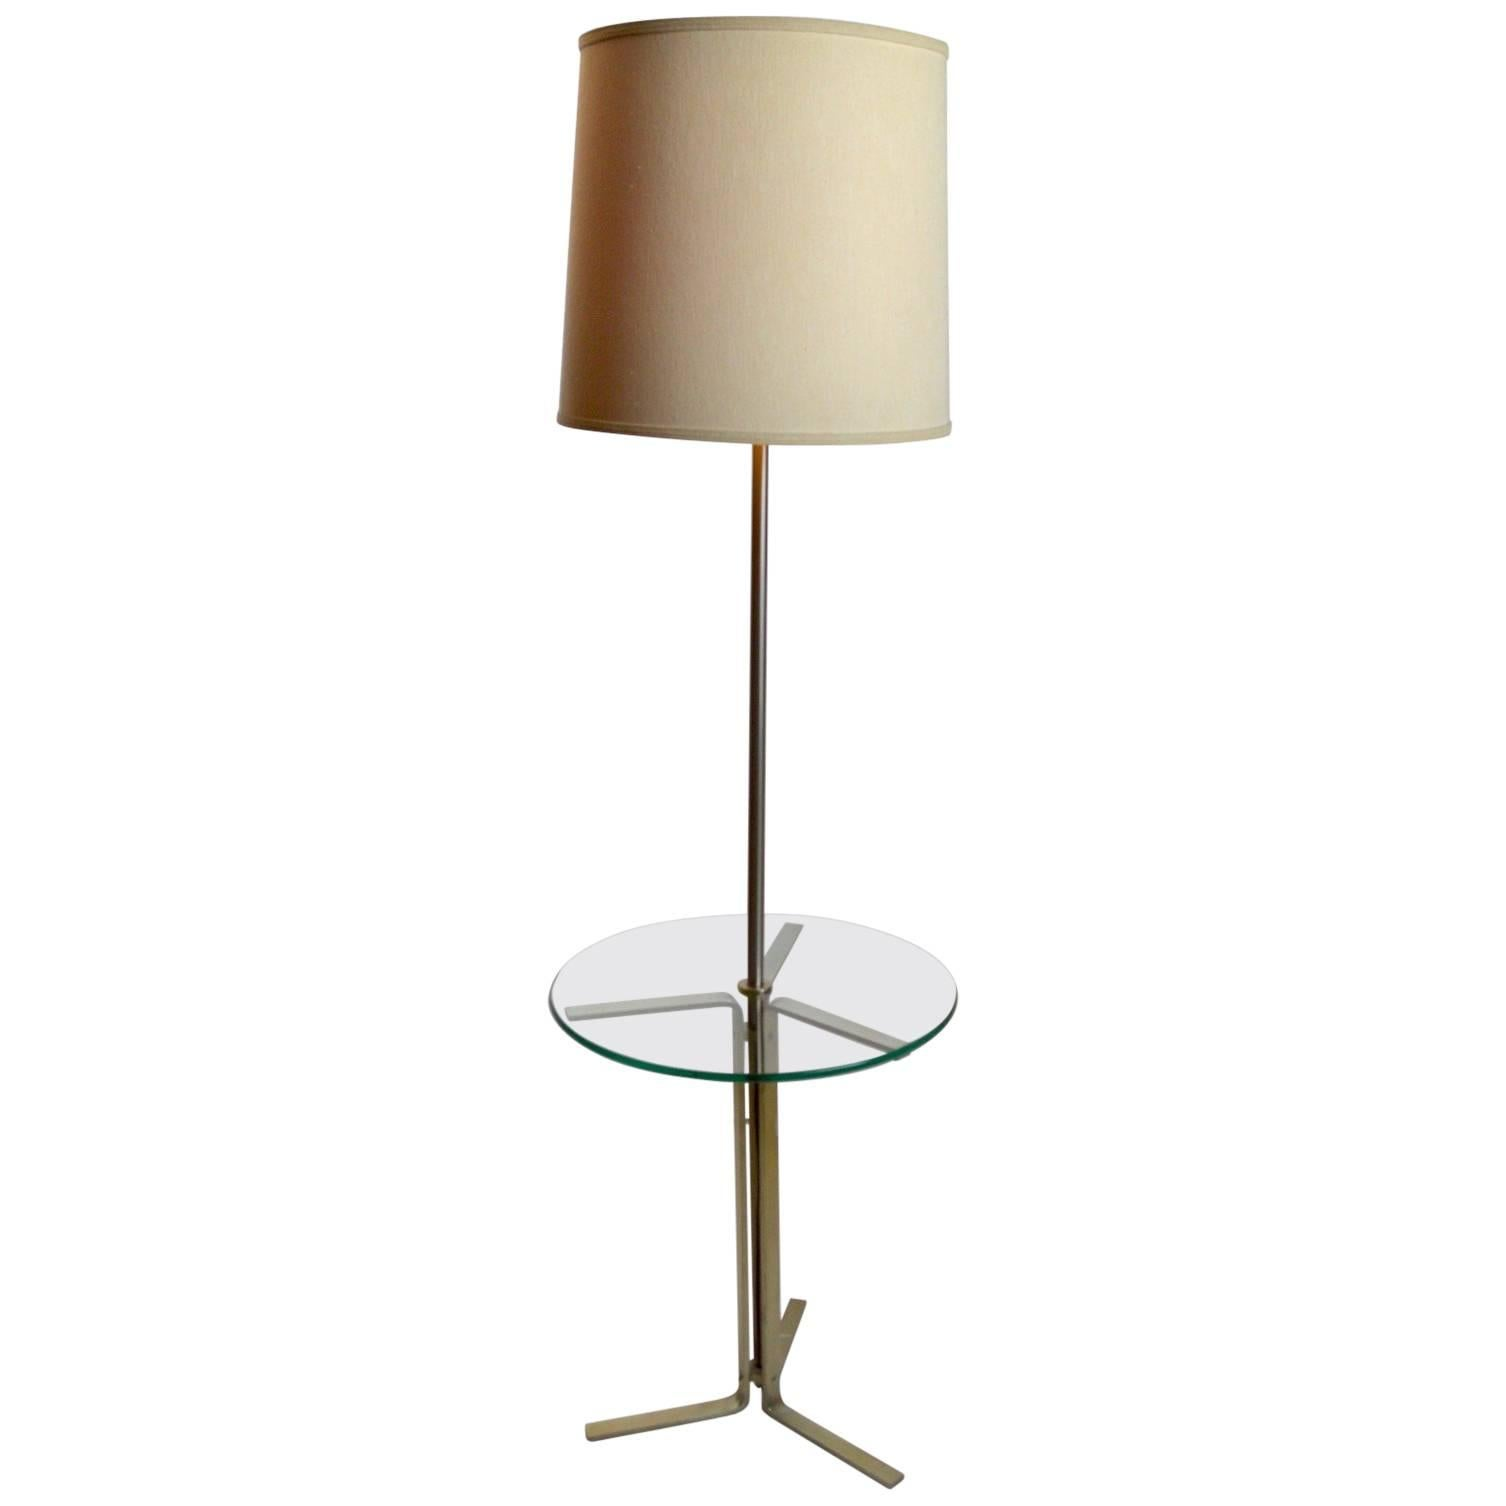 Floor Table Lamp by the Laurel Lamp Company